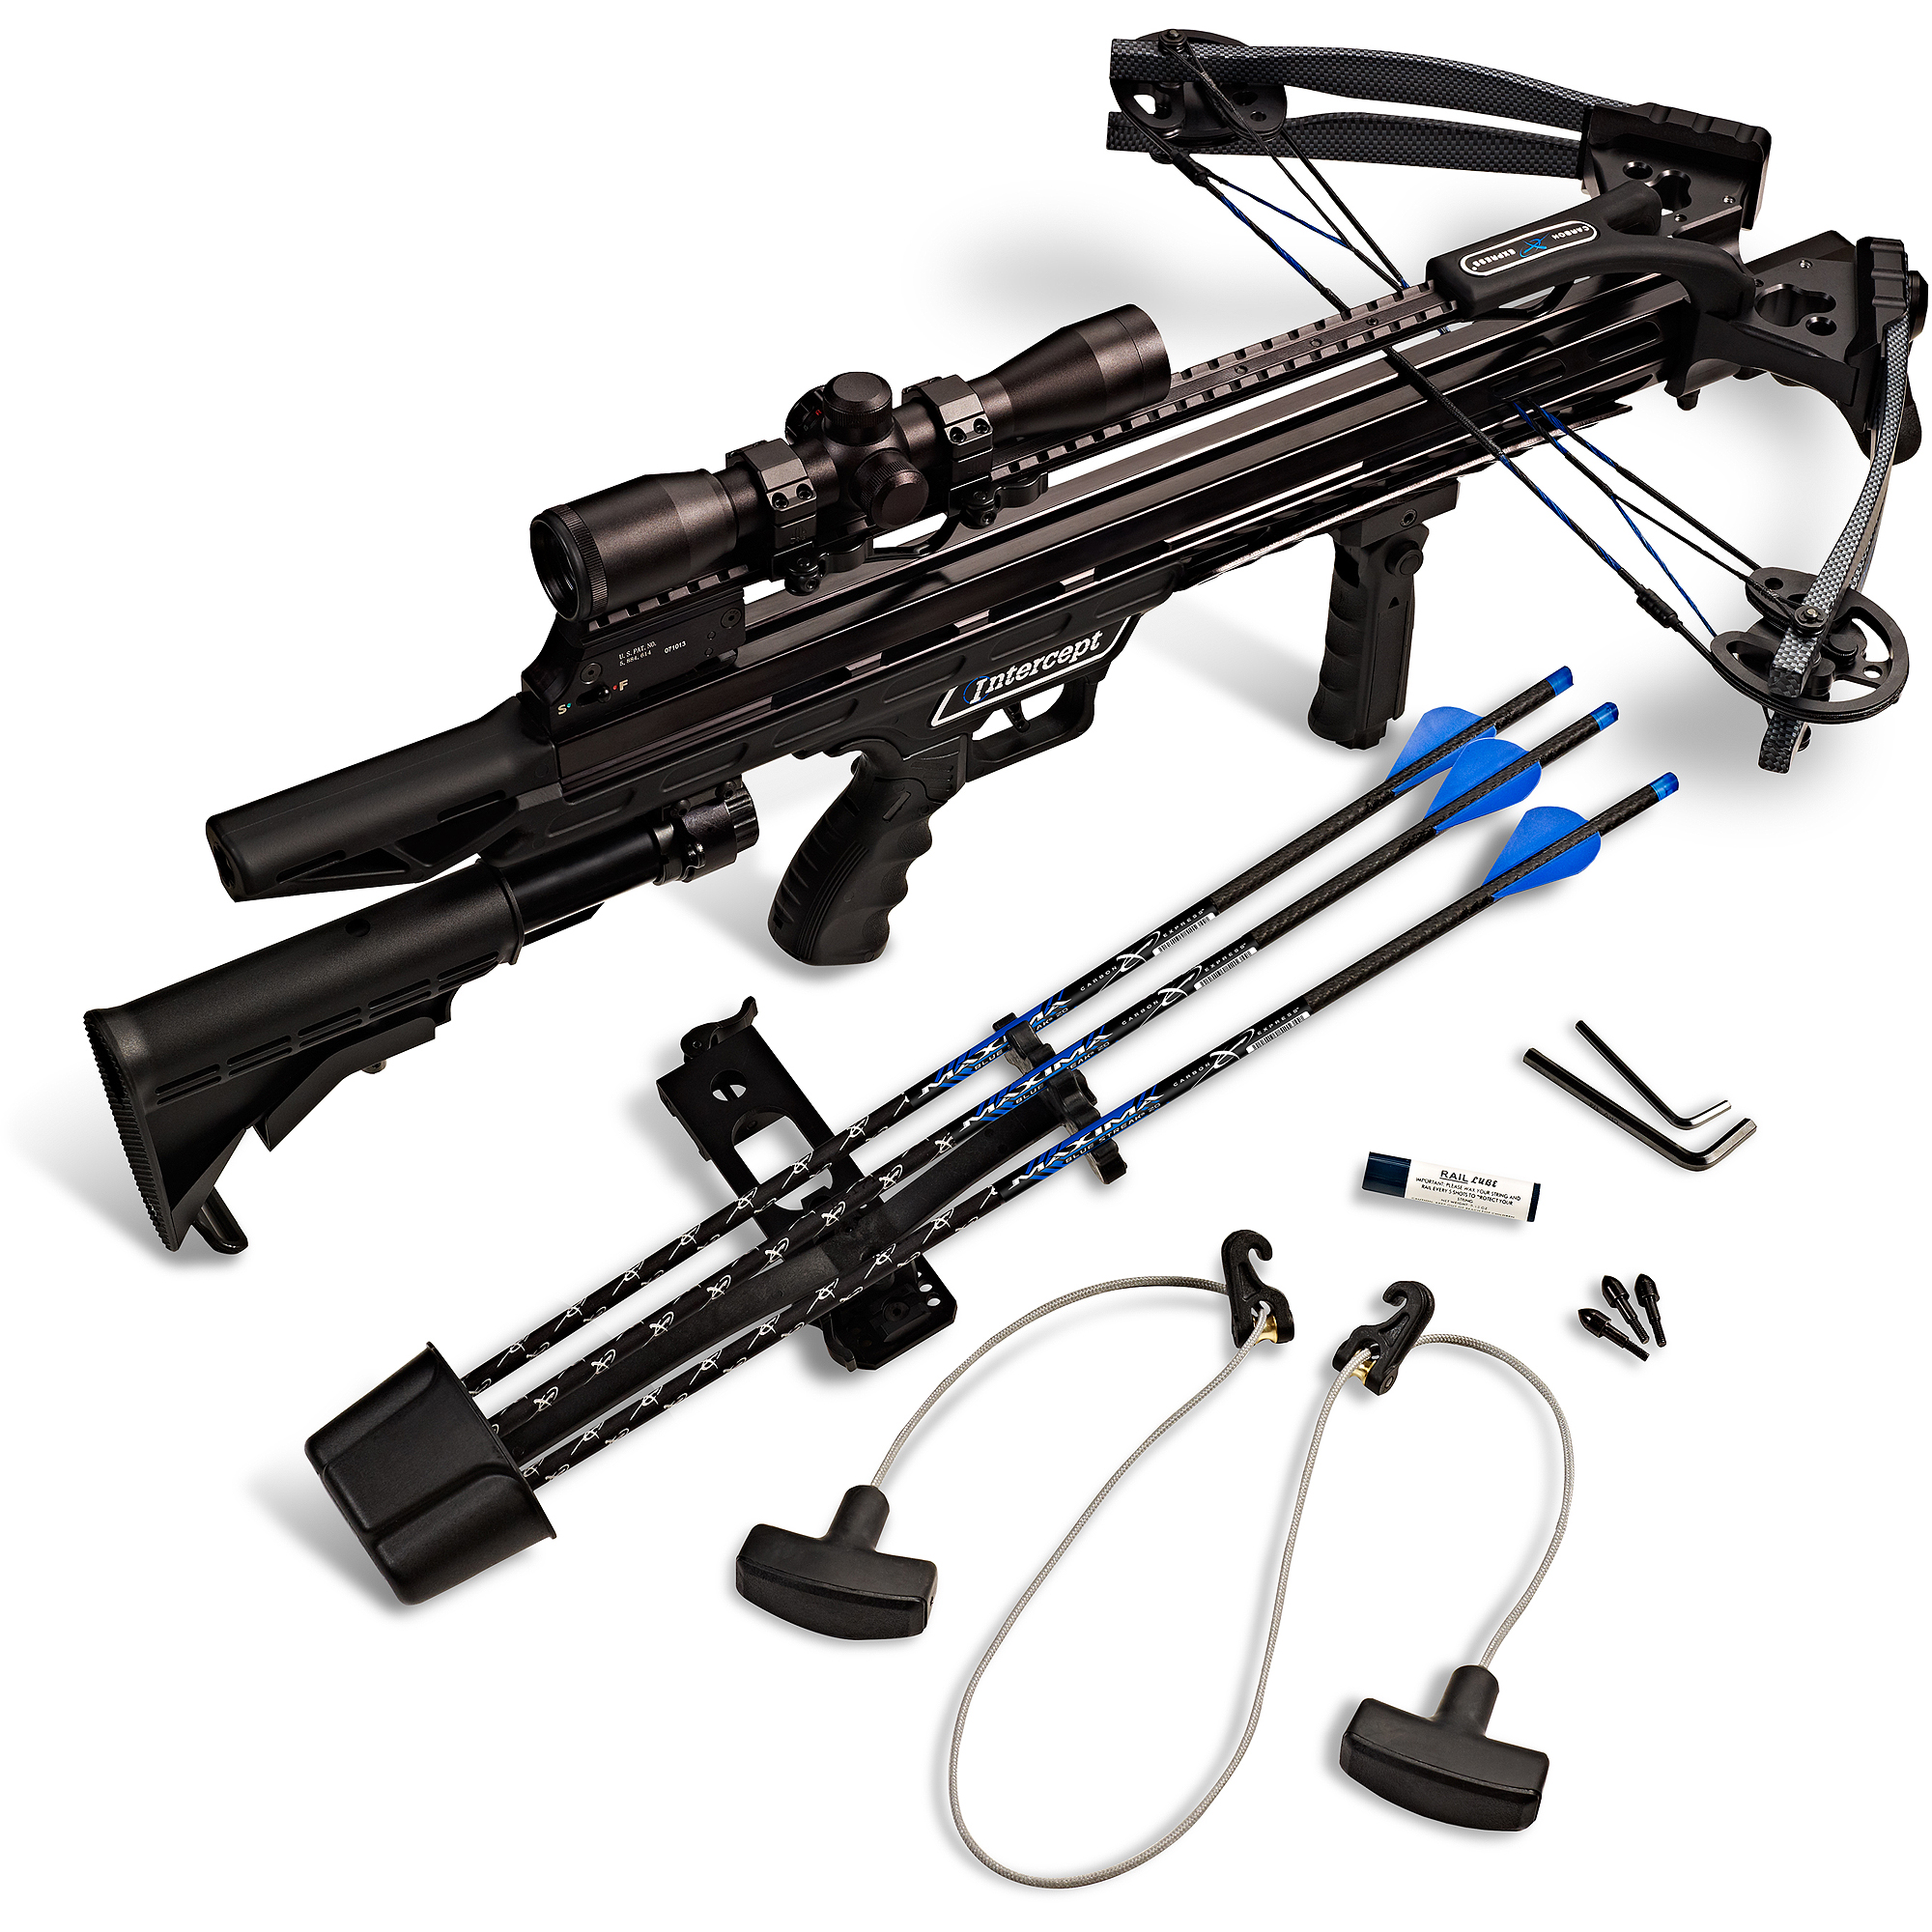 Includes mounting hardware Camx Crossbows Low Ready Sling Camo